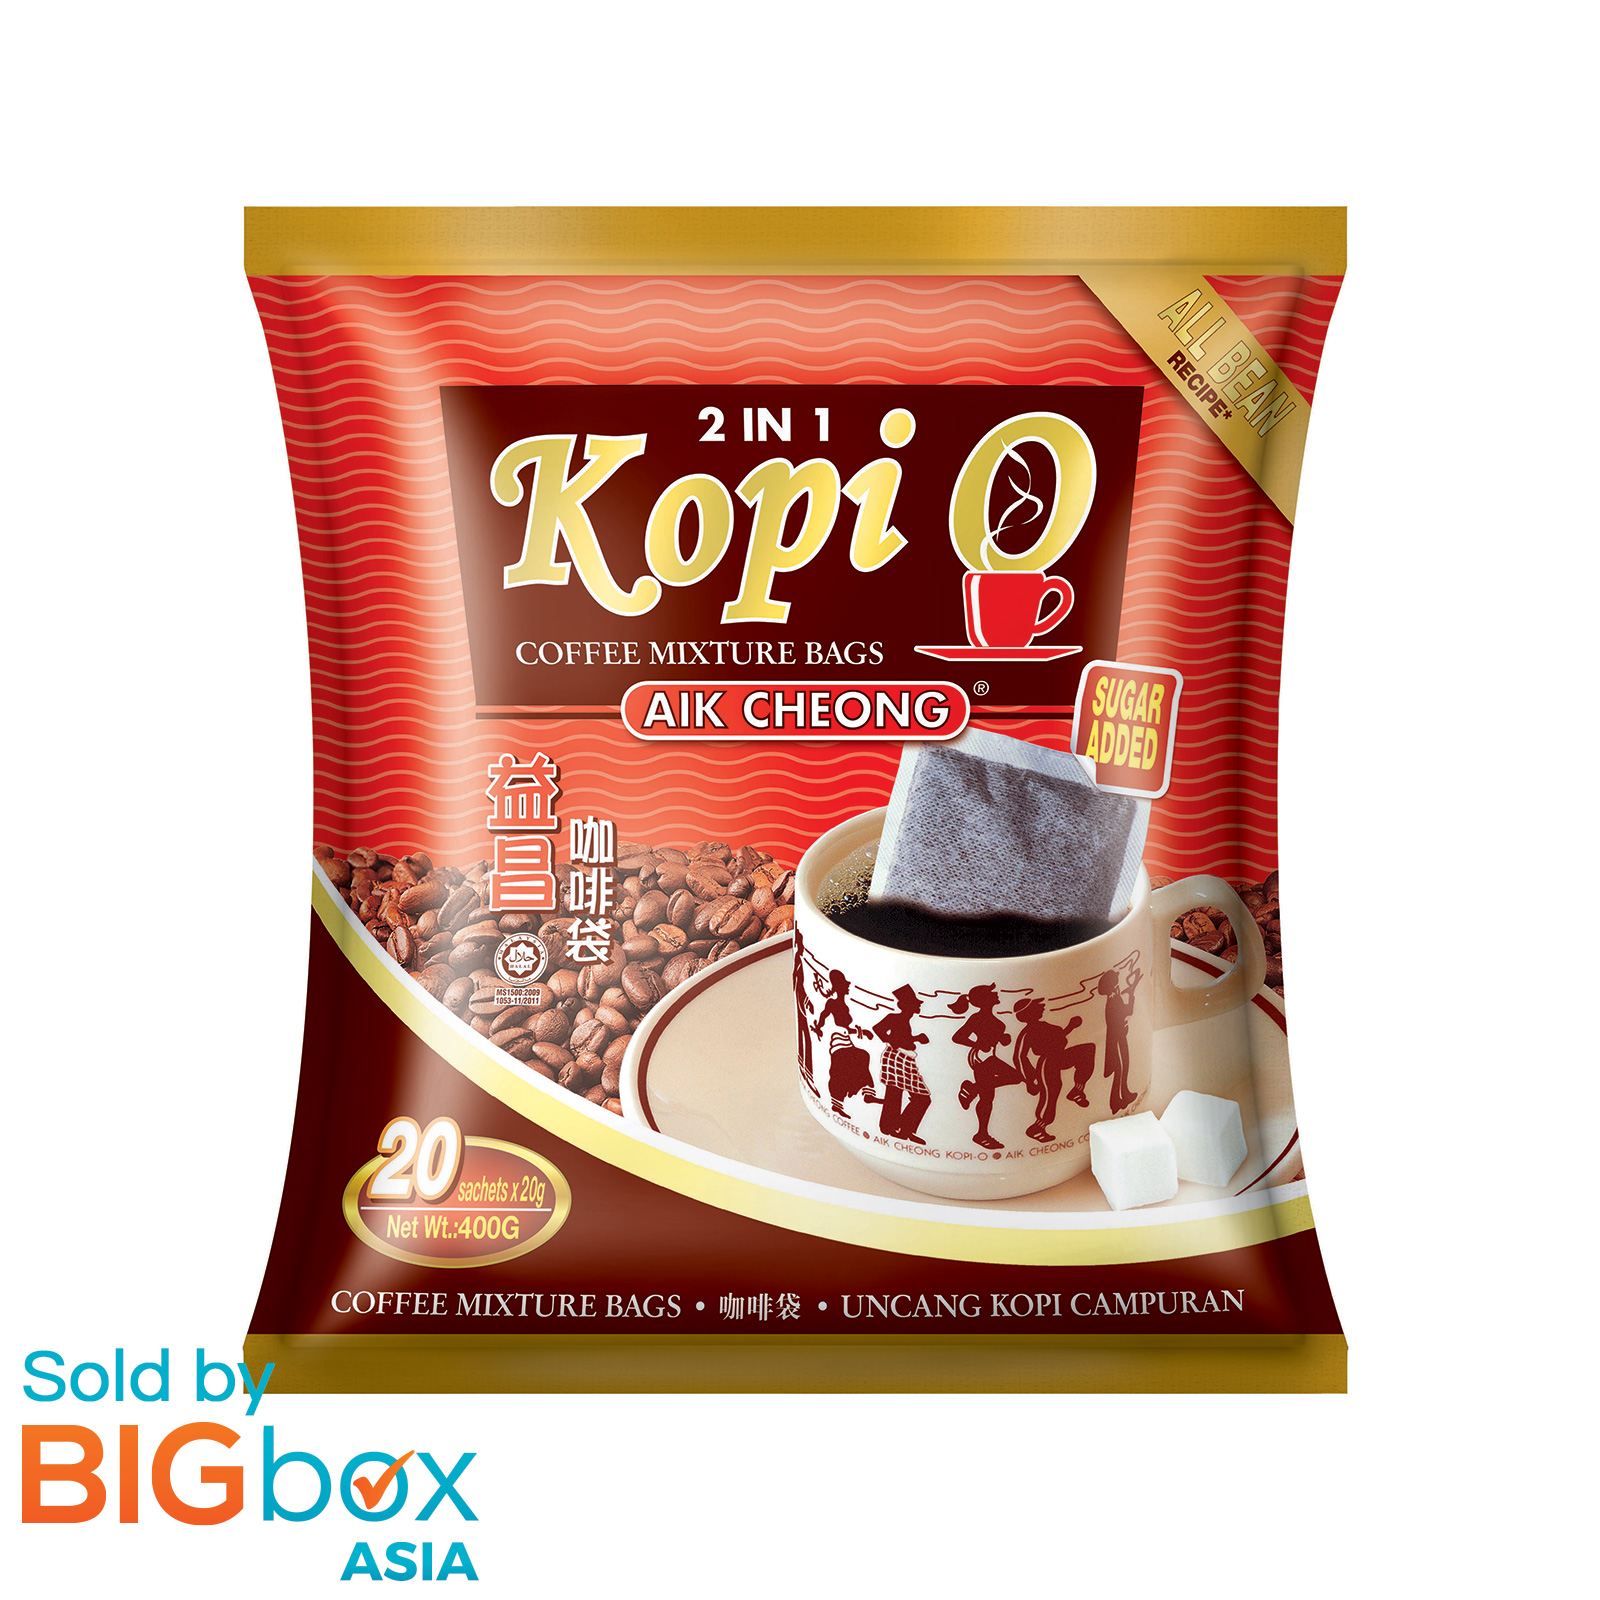 AIK CHEONG Kopi-O Bag 2in1 400g (20g x 20 sachets) - Sugar Added